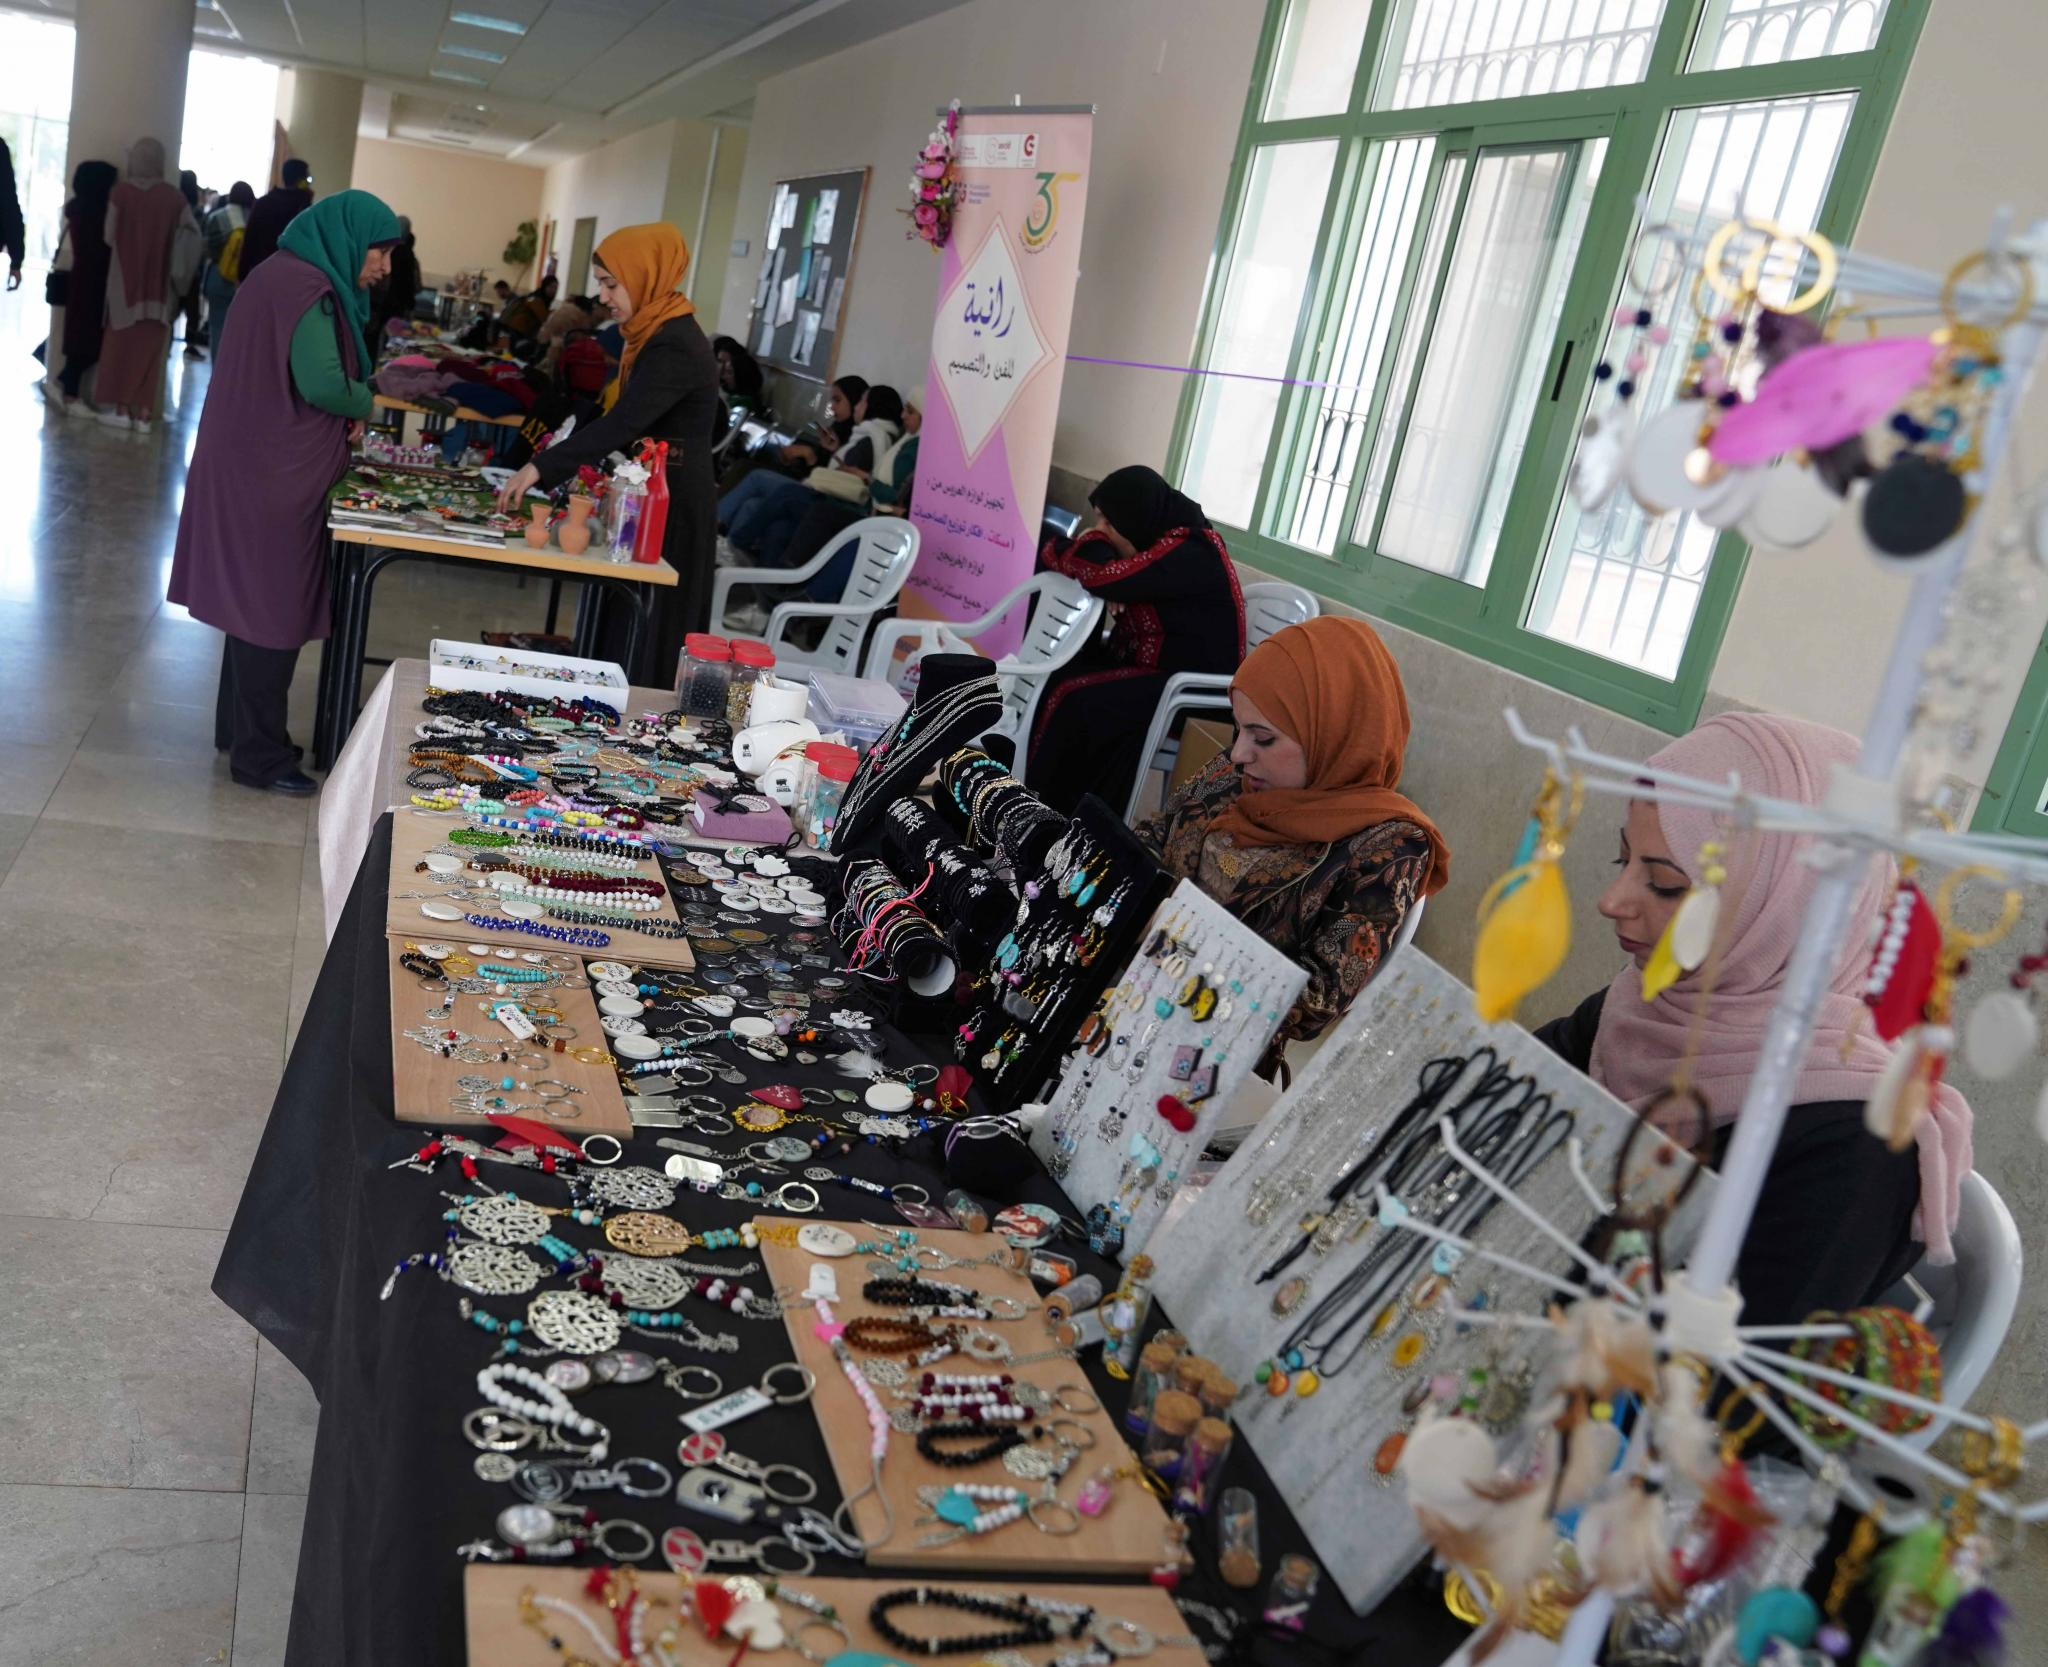 AAUP Organizes a Fair for its Students' Projects